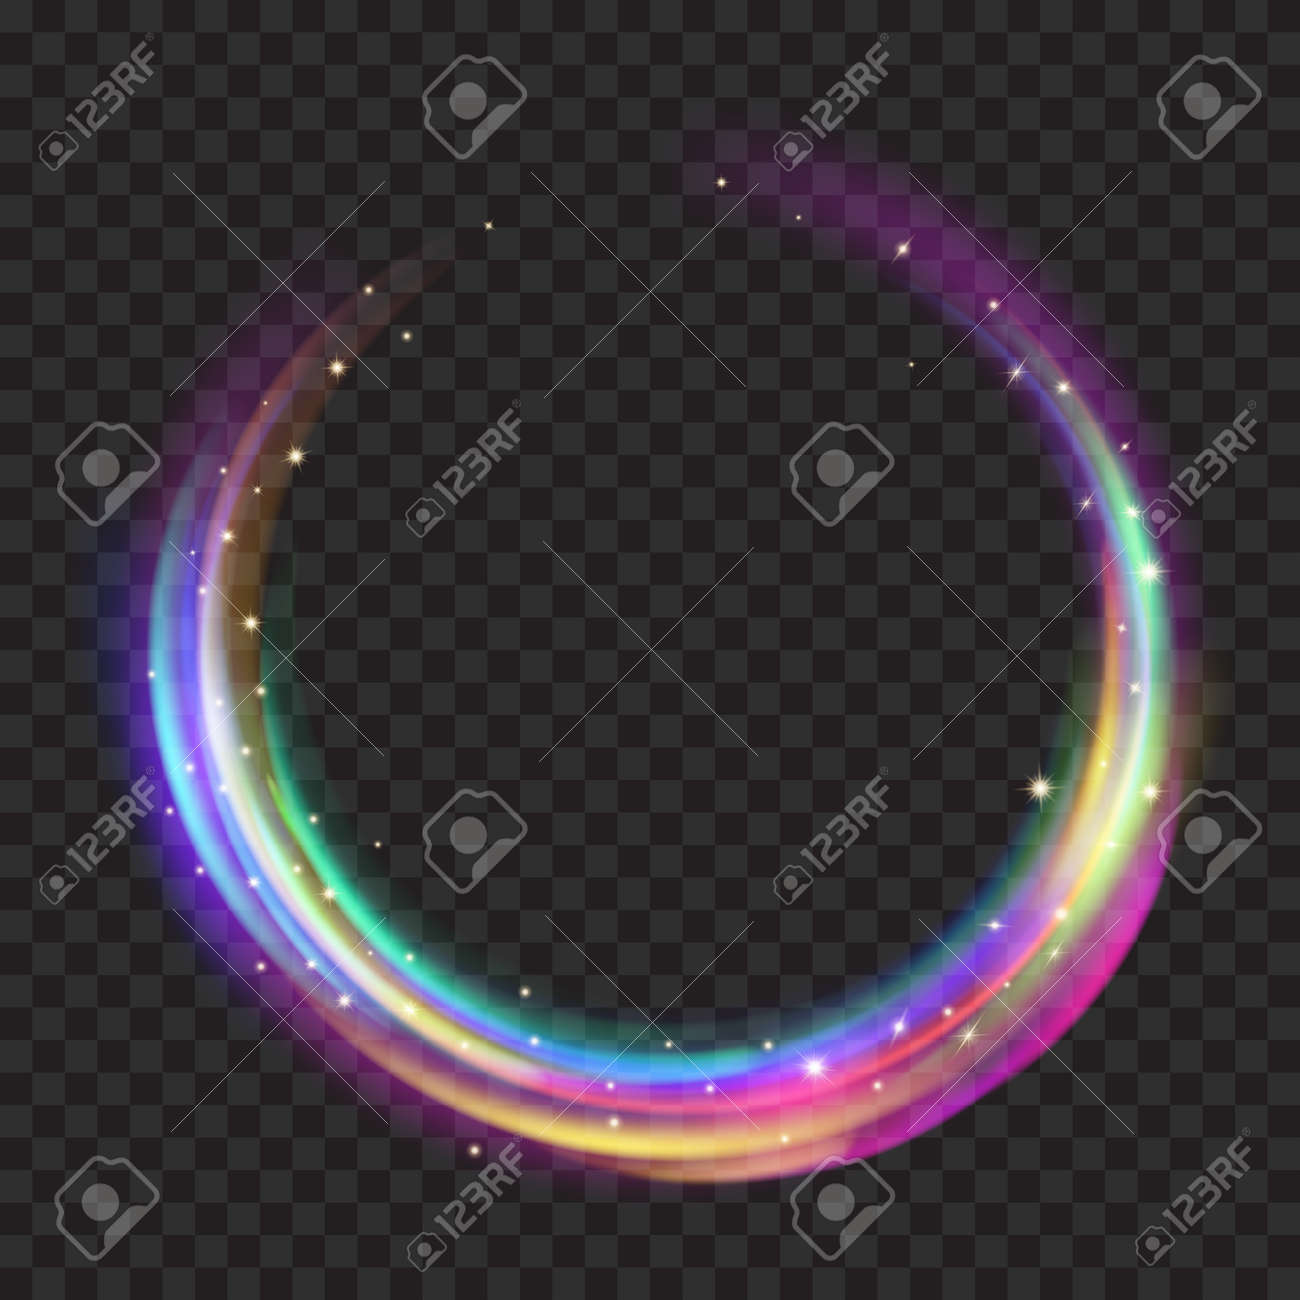 glitter photo effects stock for light dar with transparent used glowing vector rings multicolored fire background on